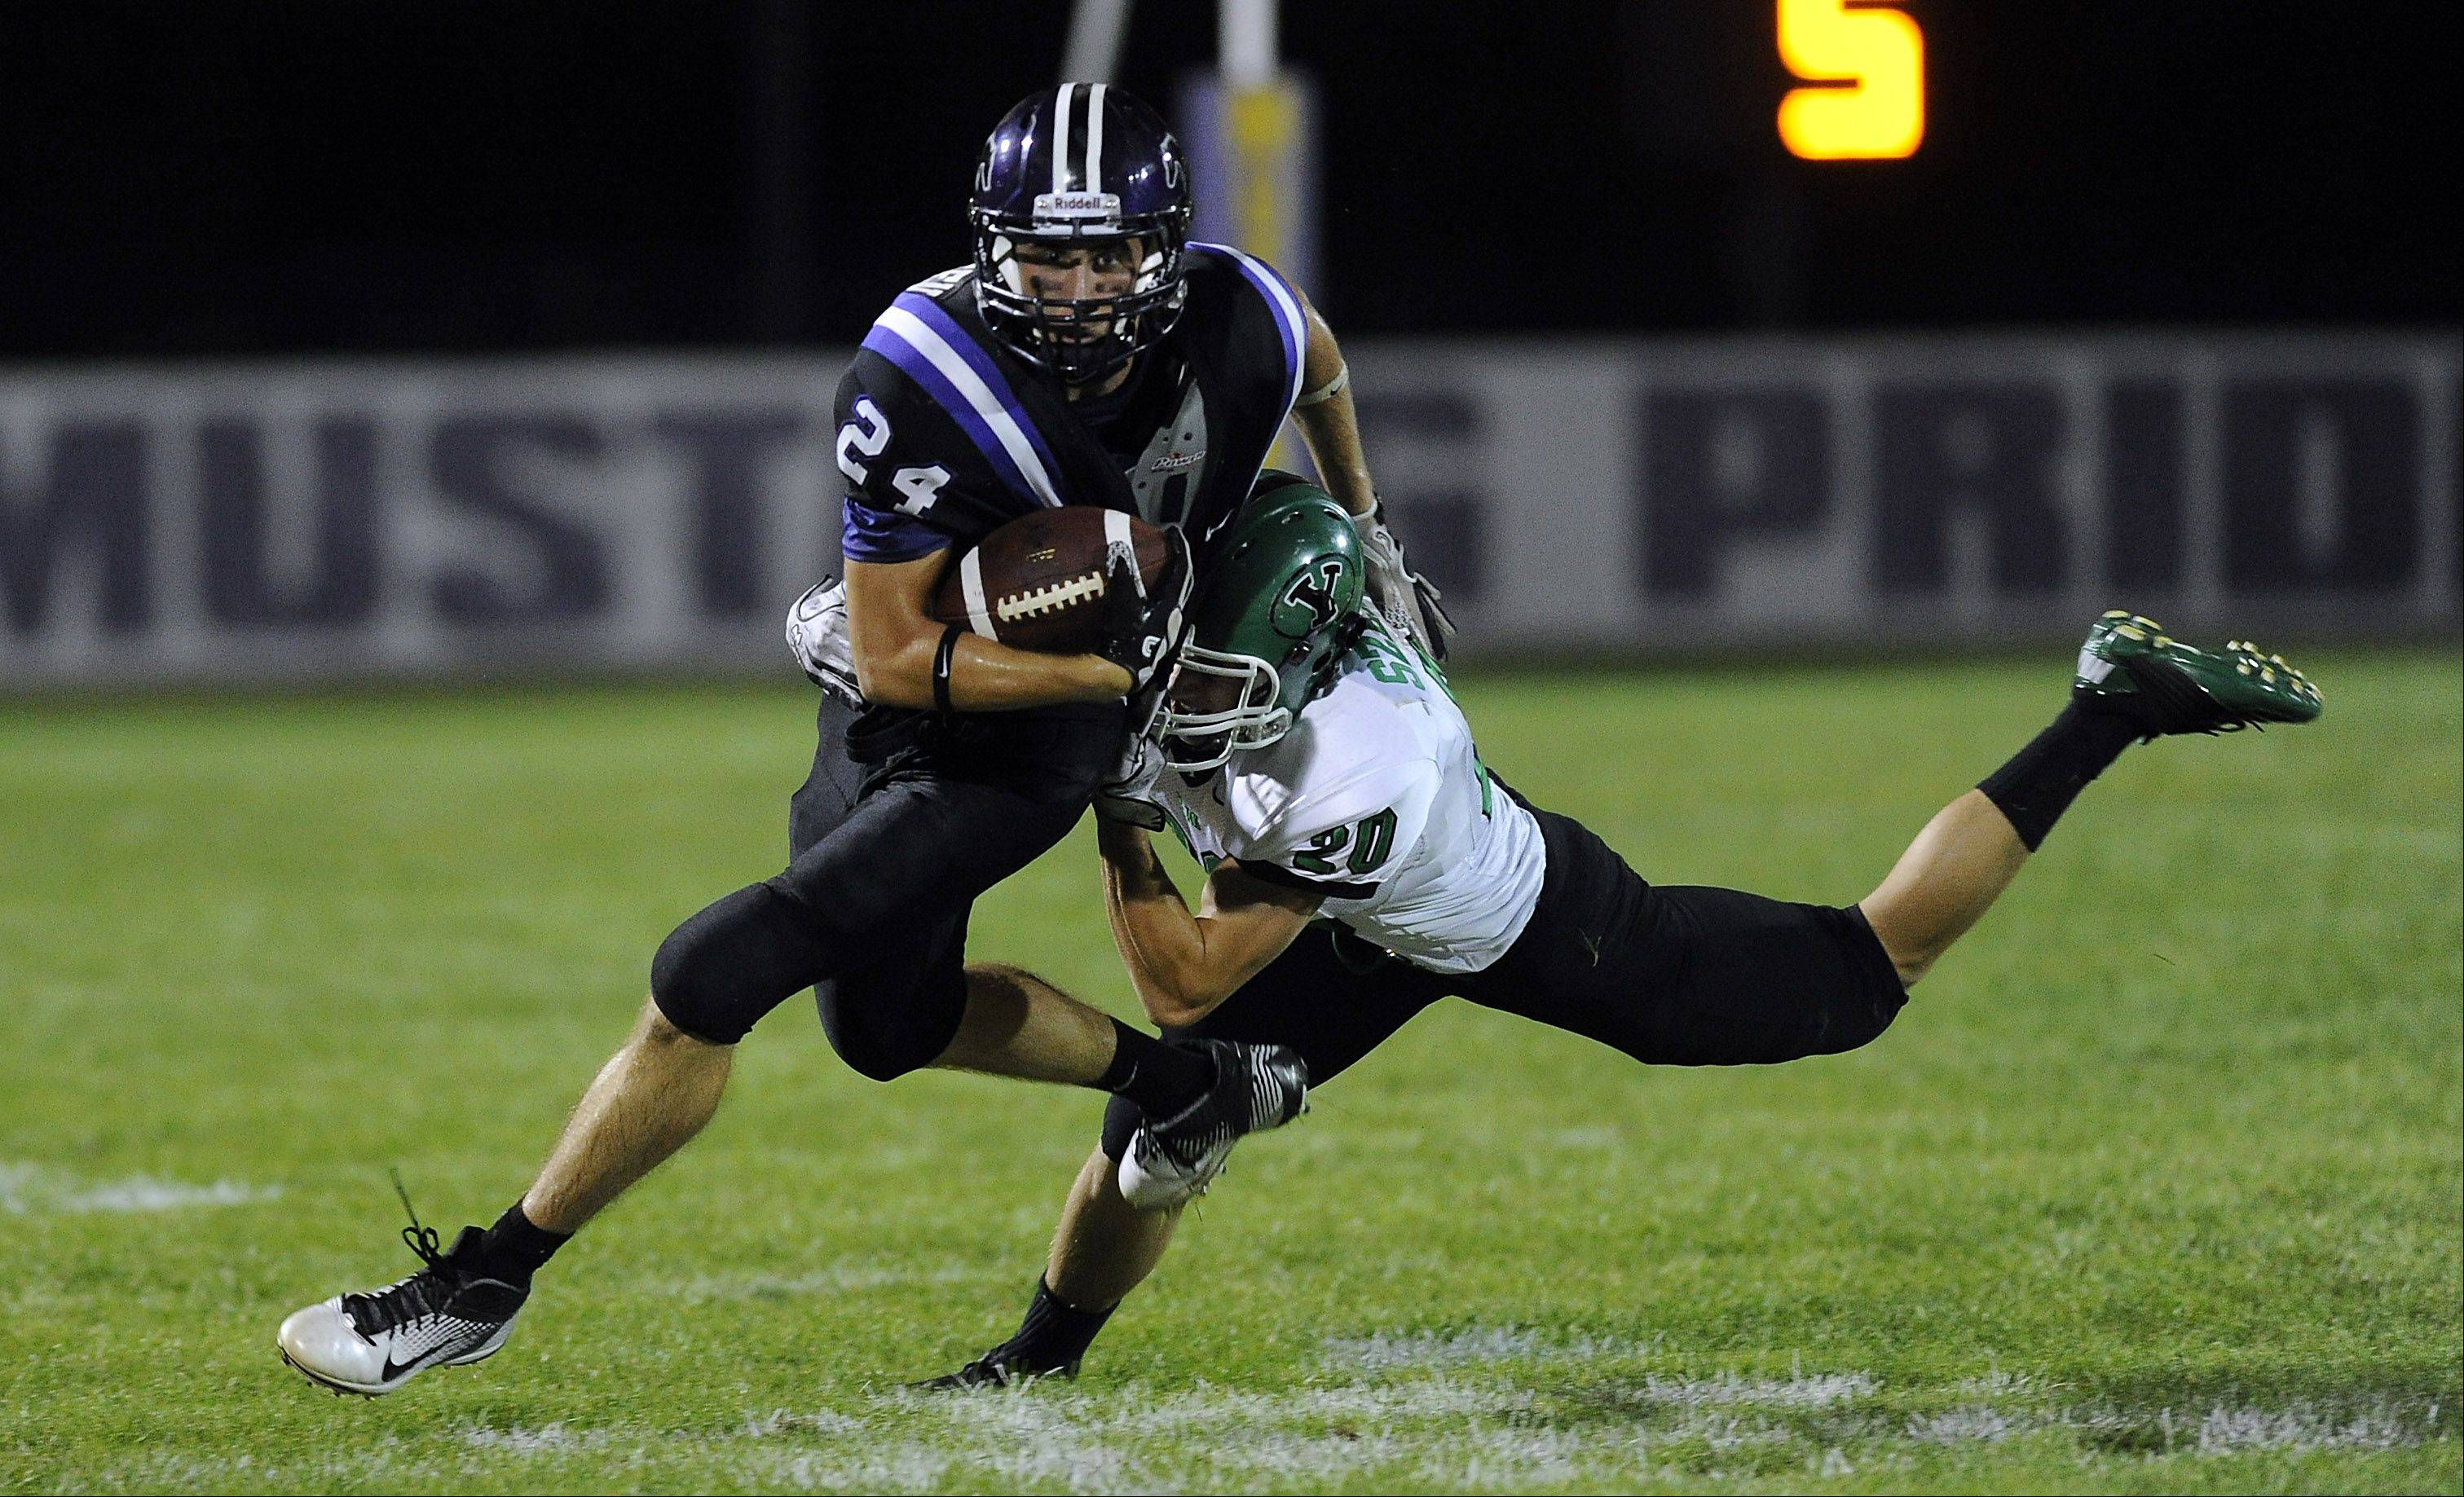 Rolling Meadows� Ryan Gundersen is tackled by York�s Kevin Szeluga in the second quarter.